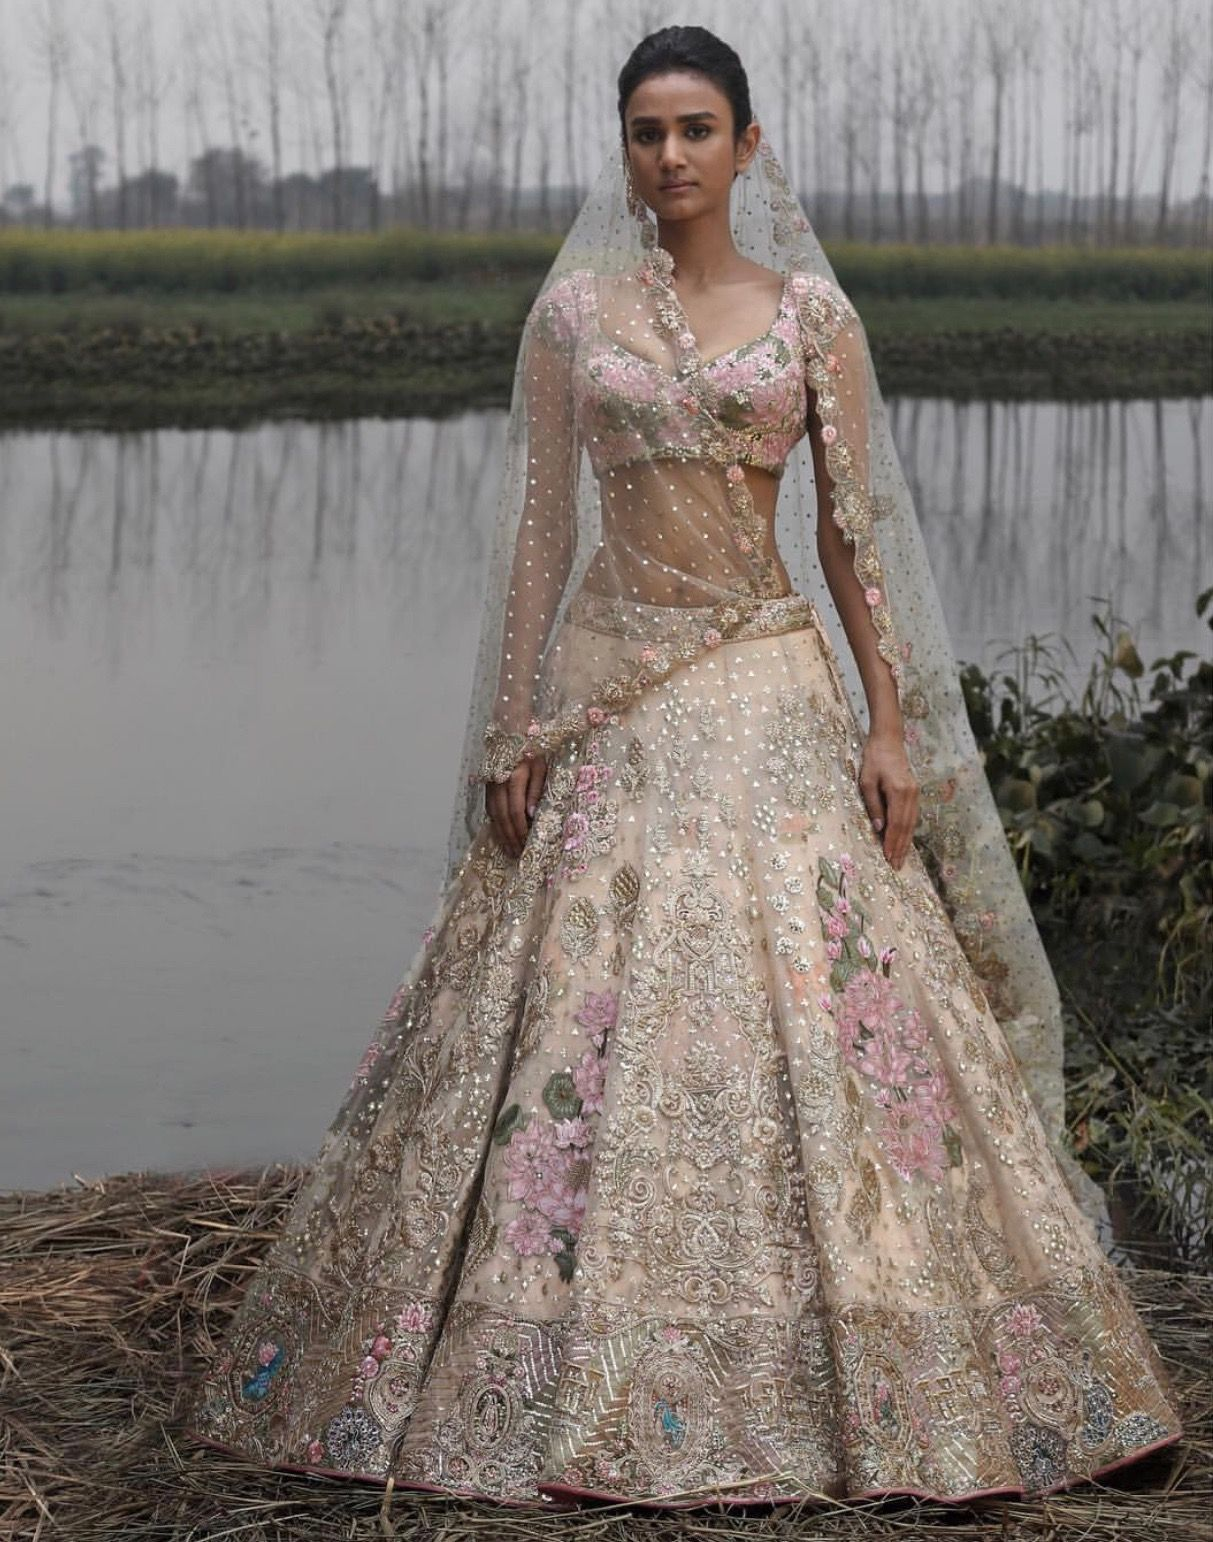 cb1ce97f14 Pinterest krutichevli indian wedding outfits pakistani dresses bridal also  best reception lehenga images rh